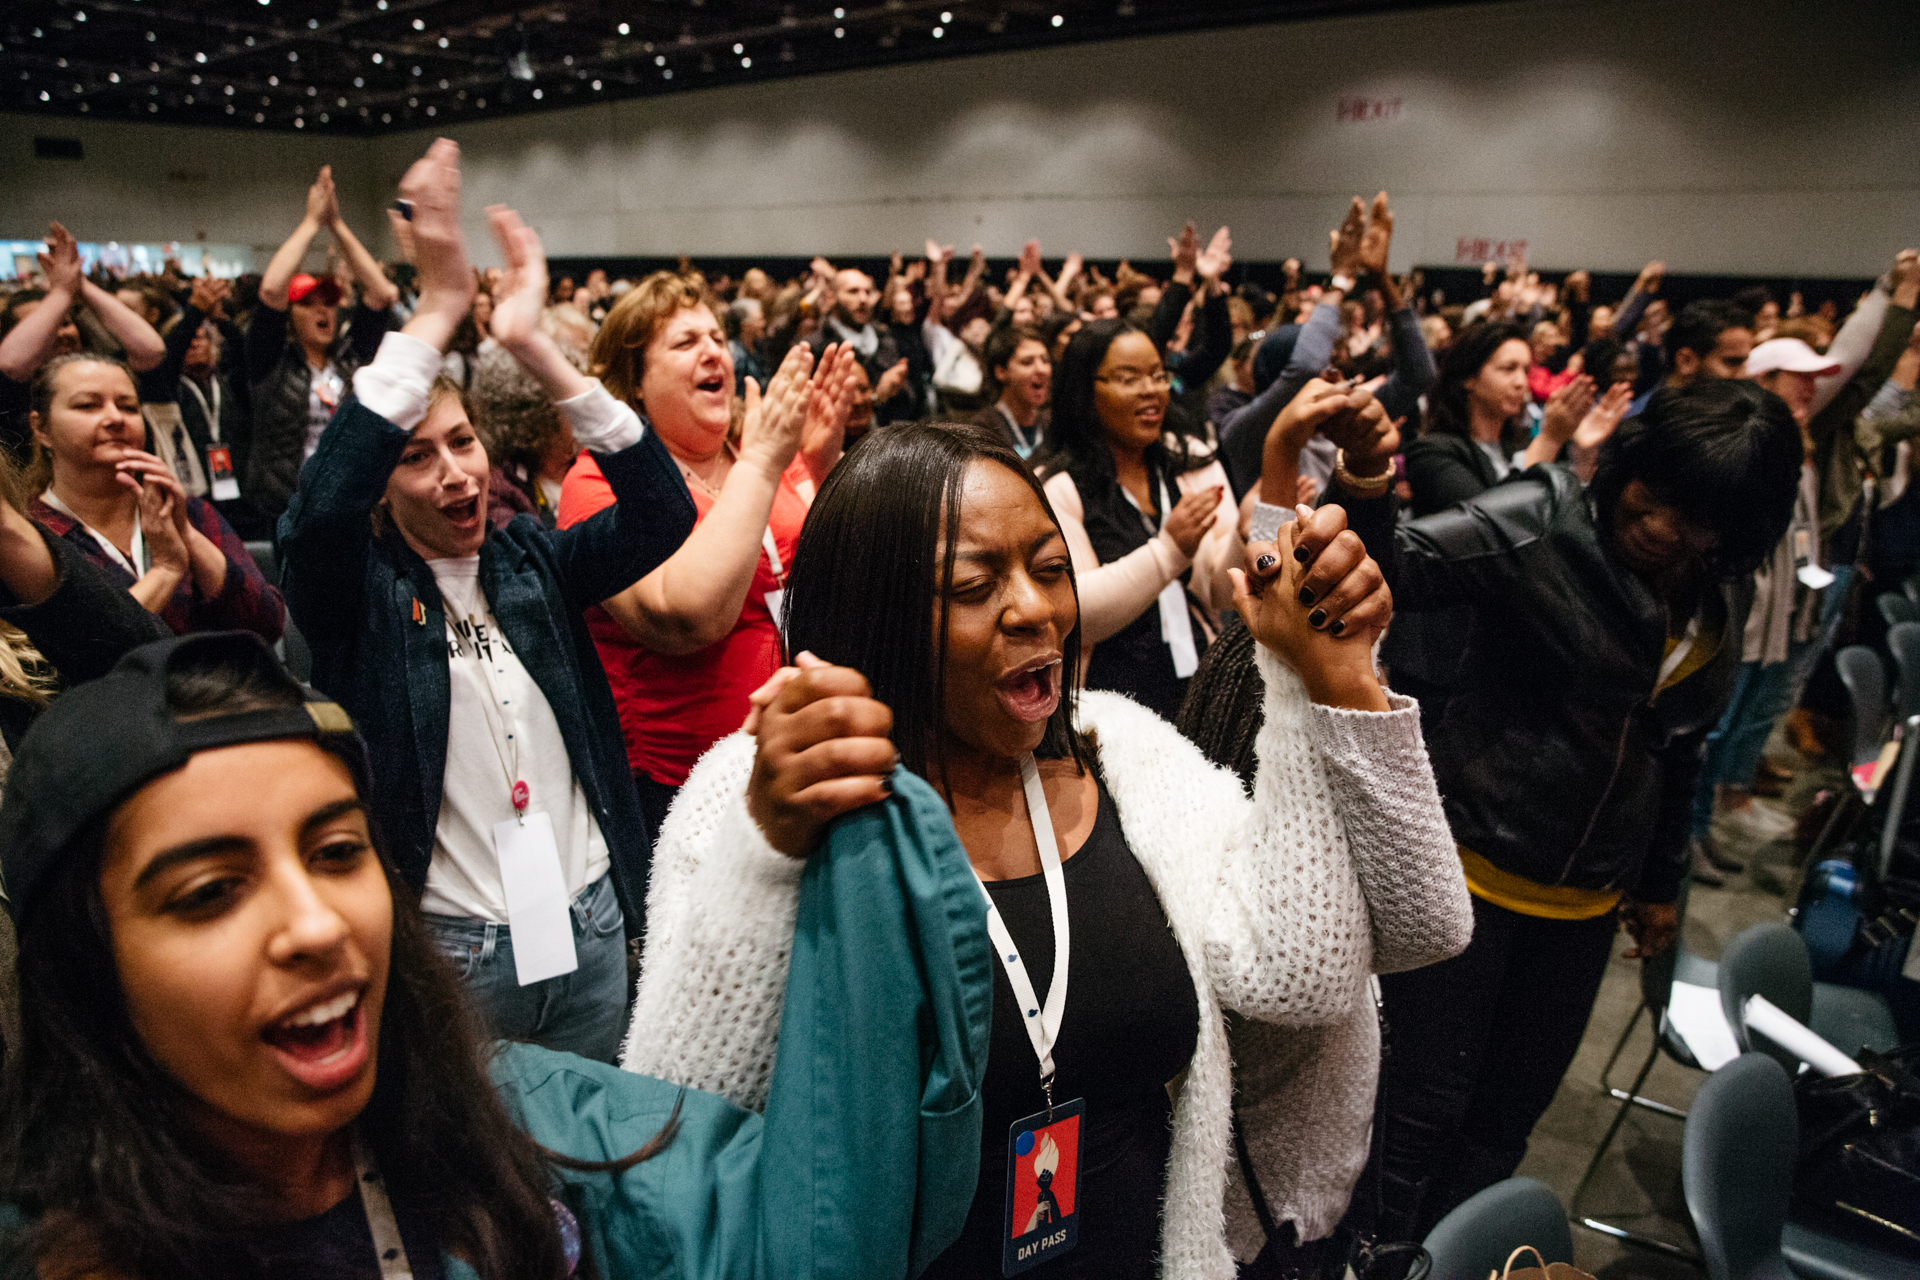 Womensconvention-11.jpg